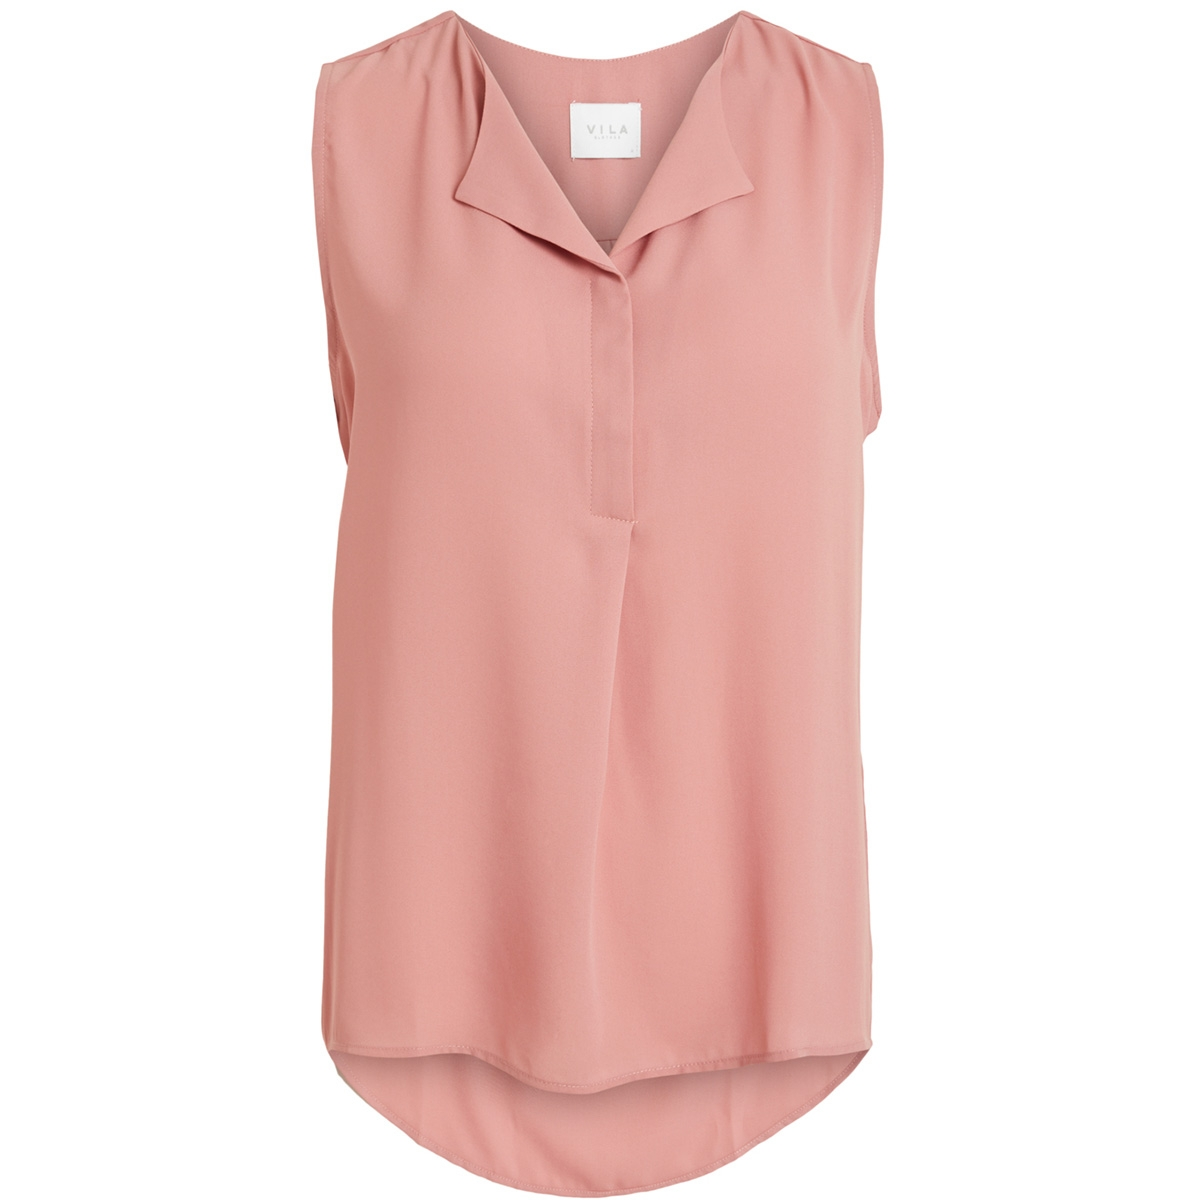 vilucy s/l top - noos 14044615 vila top brandied apricot